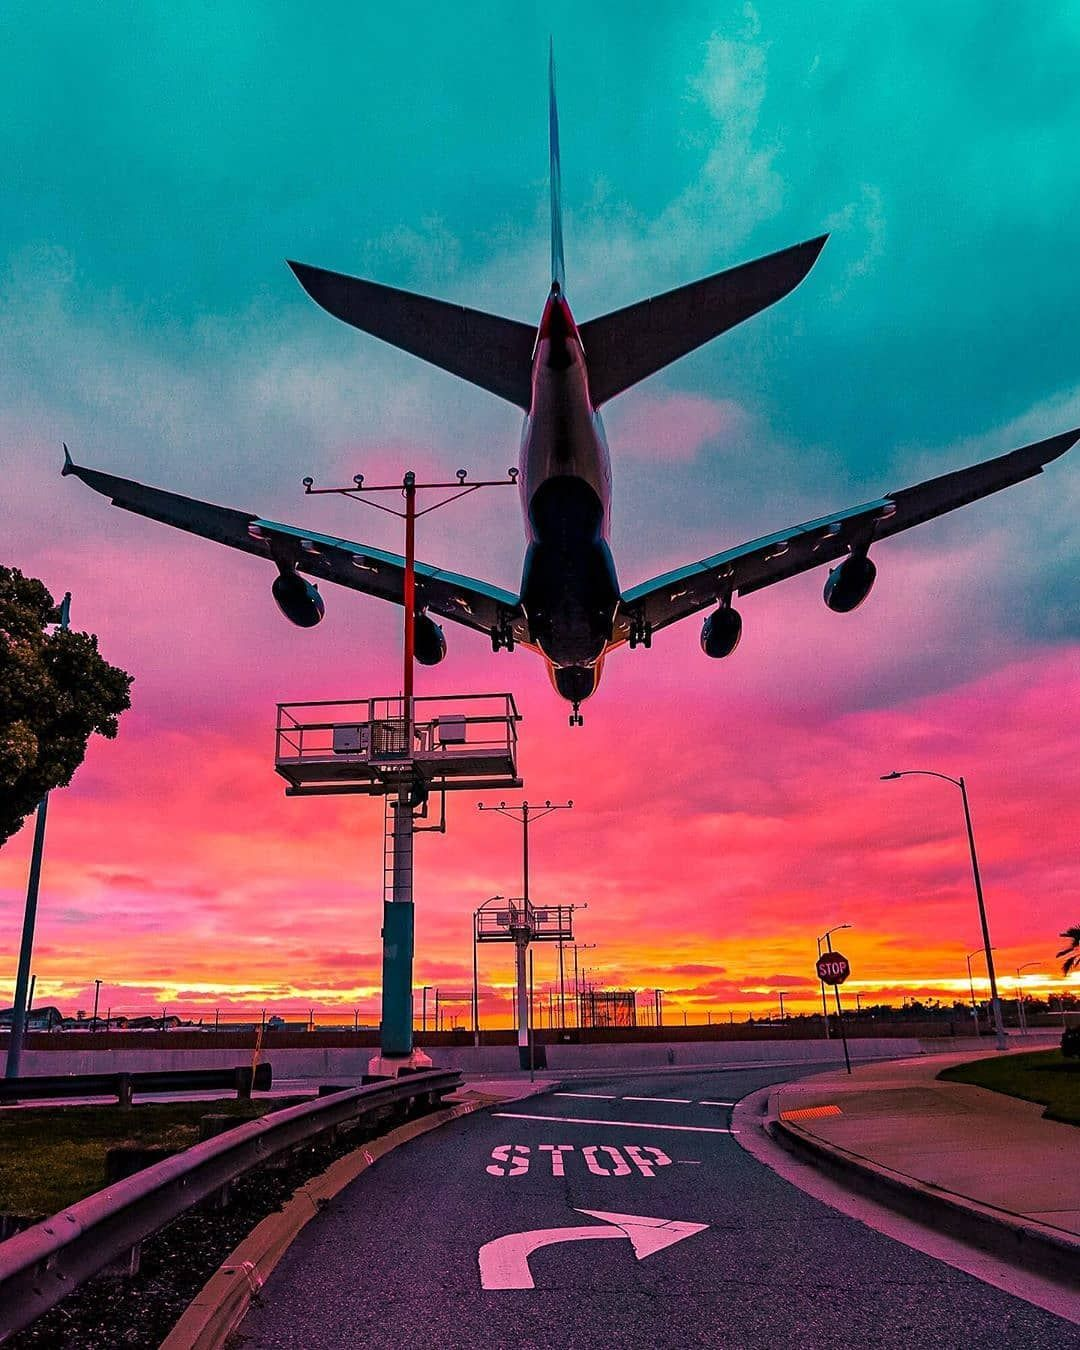 Travel Landscape Nature On Instagram Follow Us Cool Universe Los Angeles Tag Someone That Aesthetic Backgrounds Sky Aesthetic Airplane Wallpaper